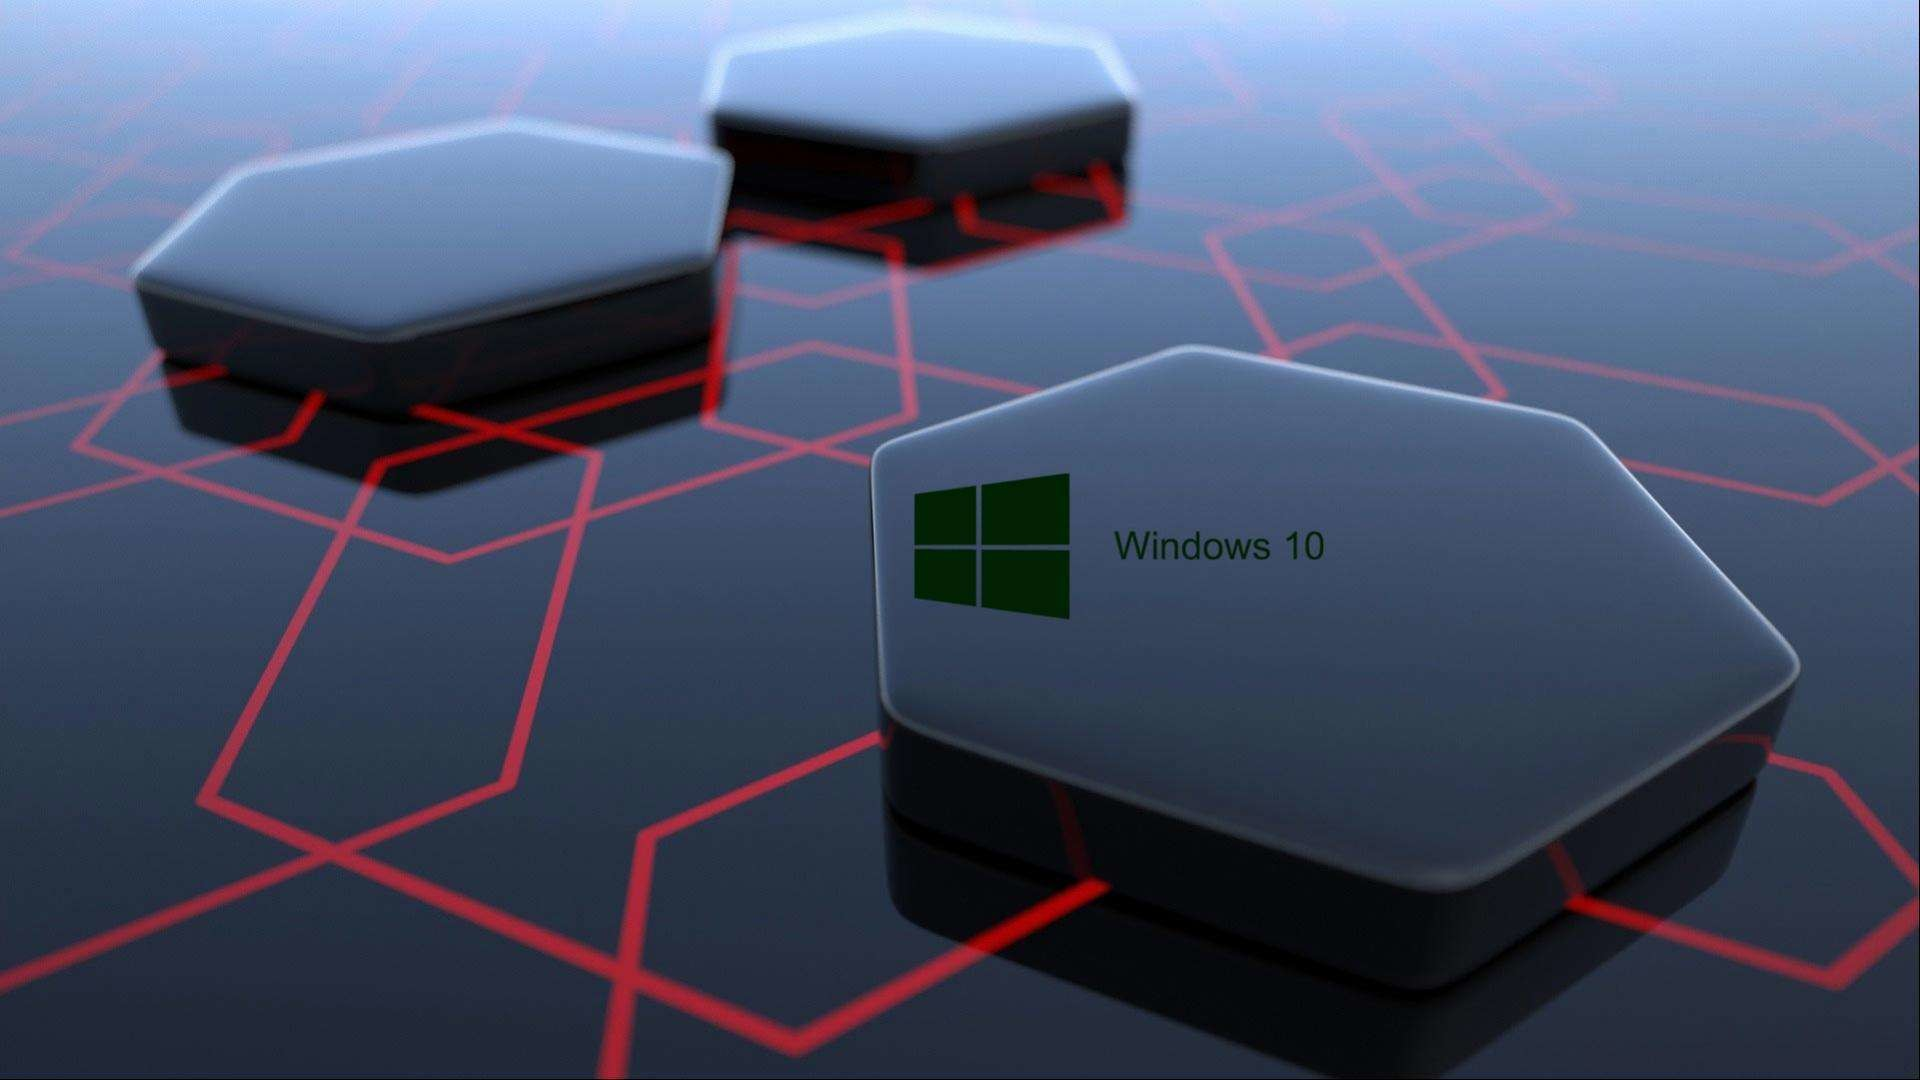 3D Wallpapers for Windows 10 (59+ images)